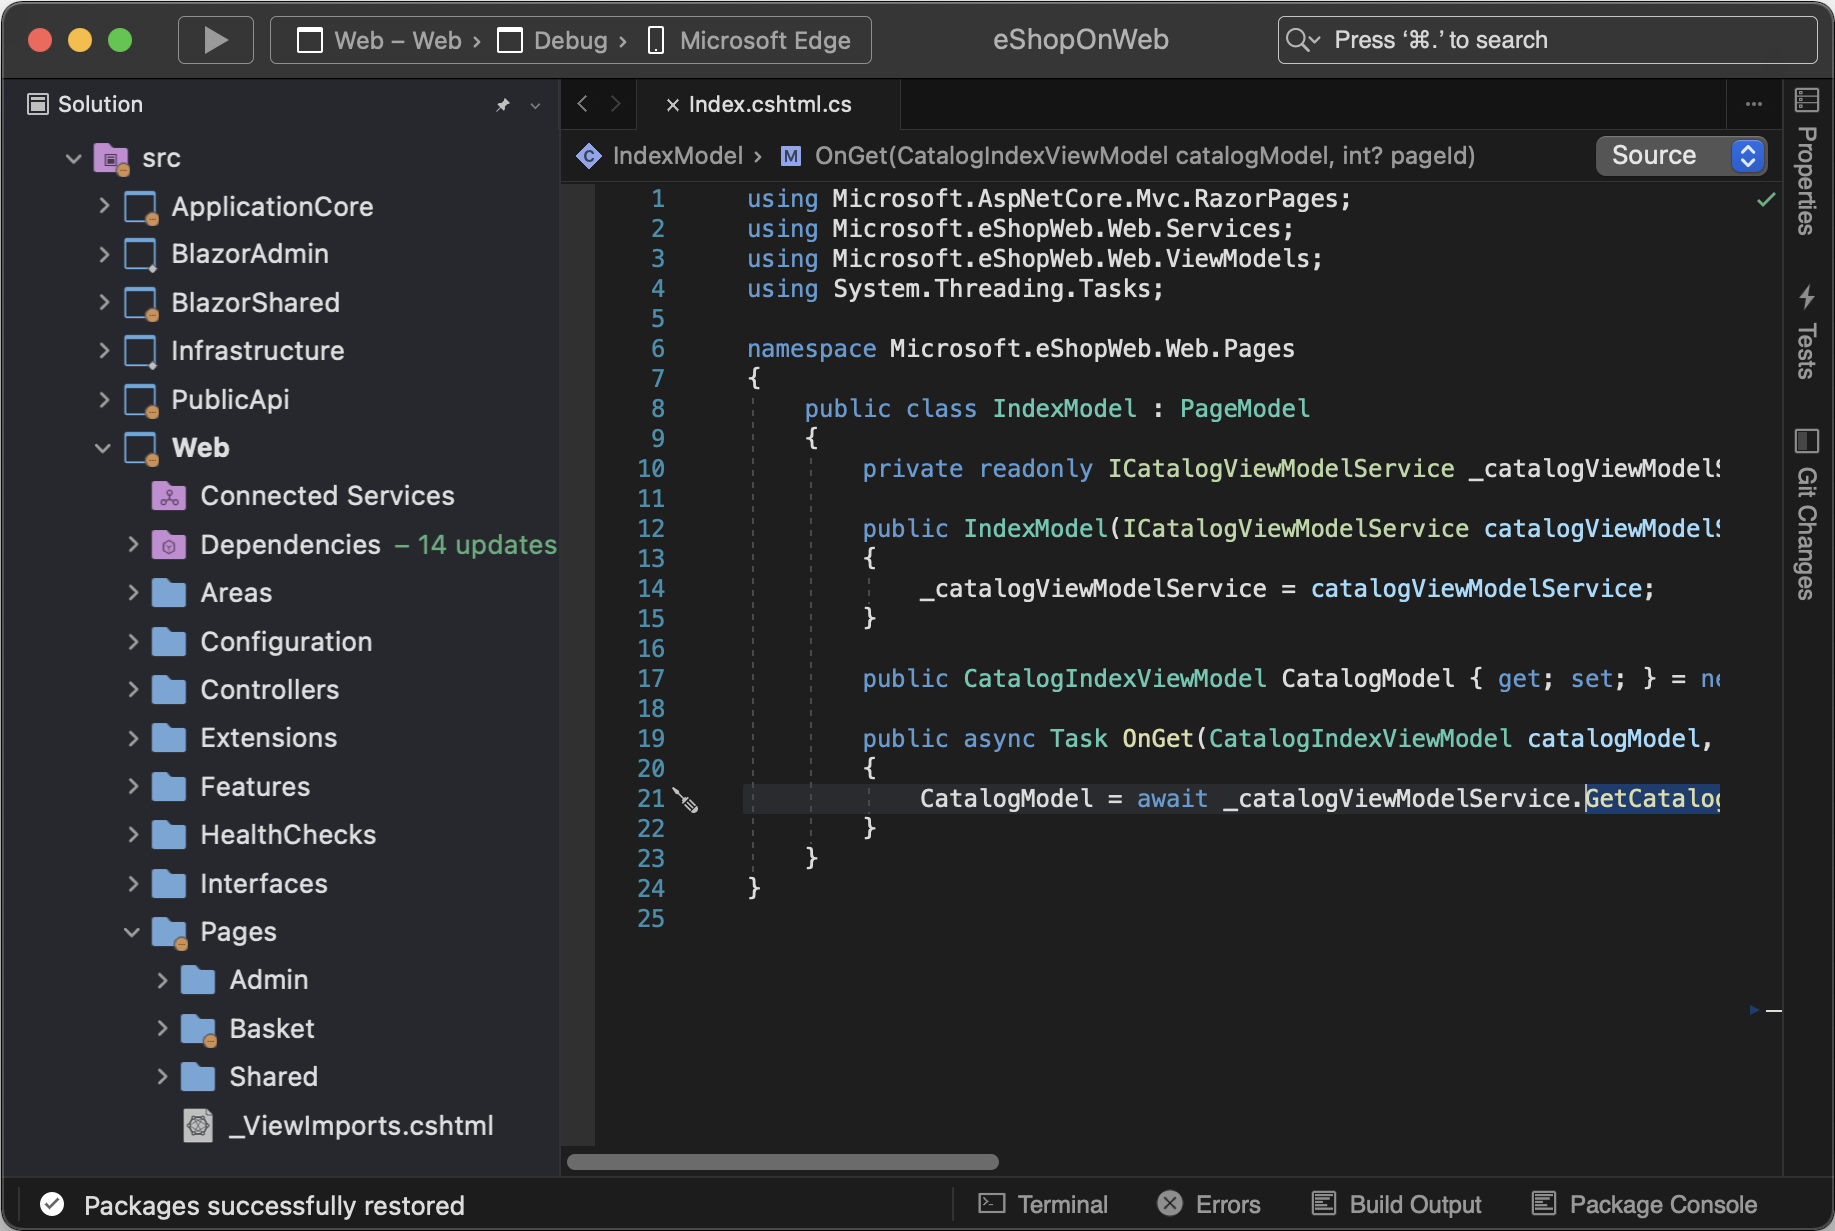 Visual Studio 2022 for Mac Preview 1 is now available!